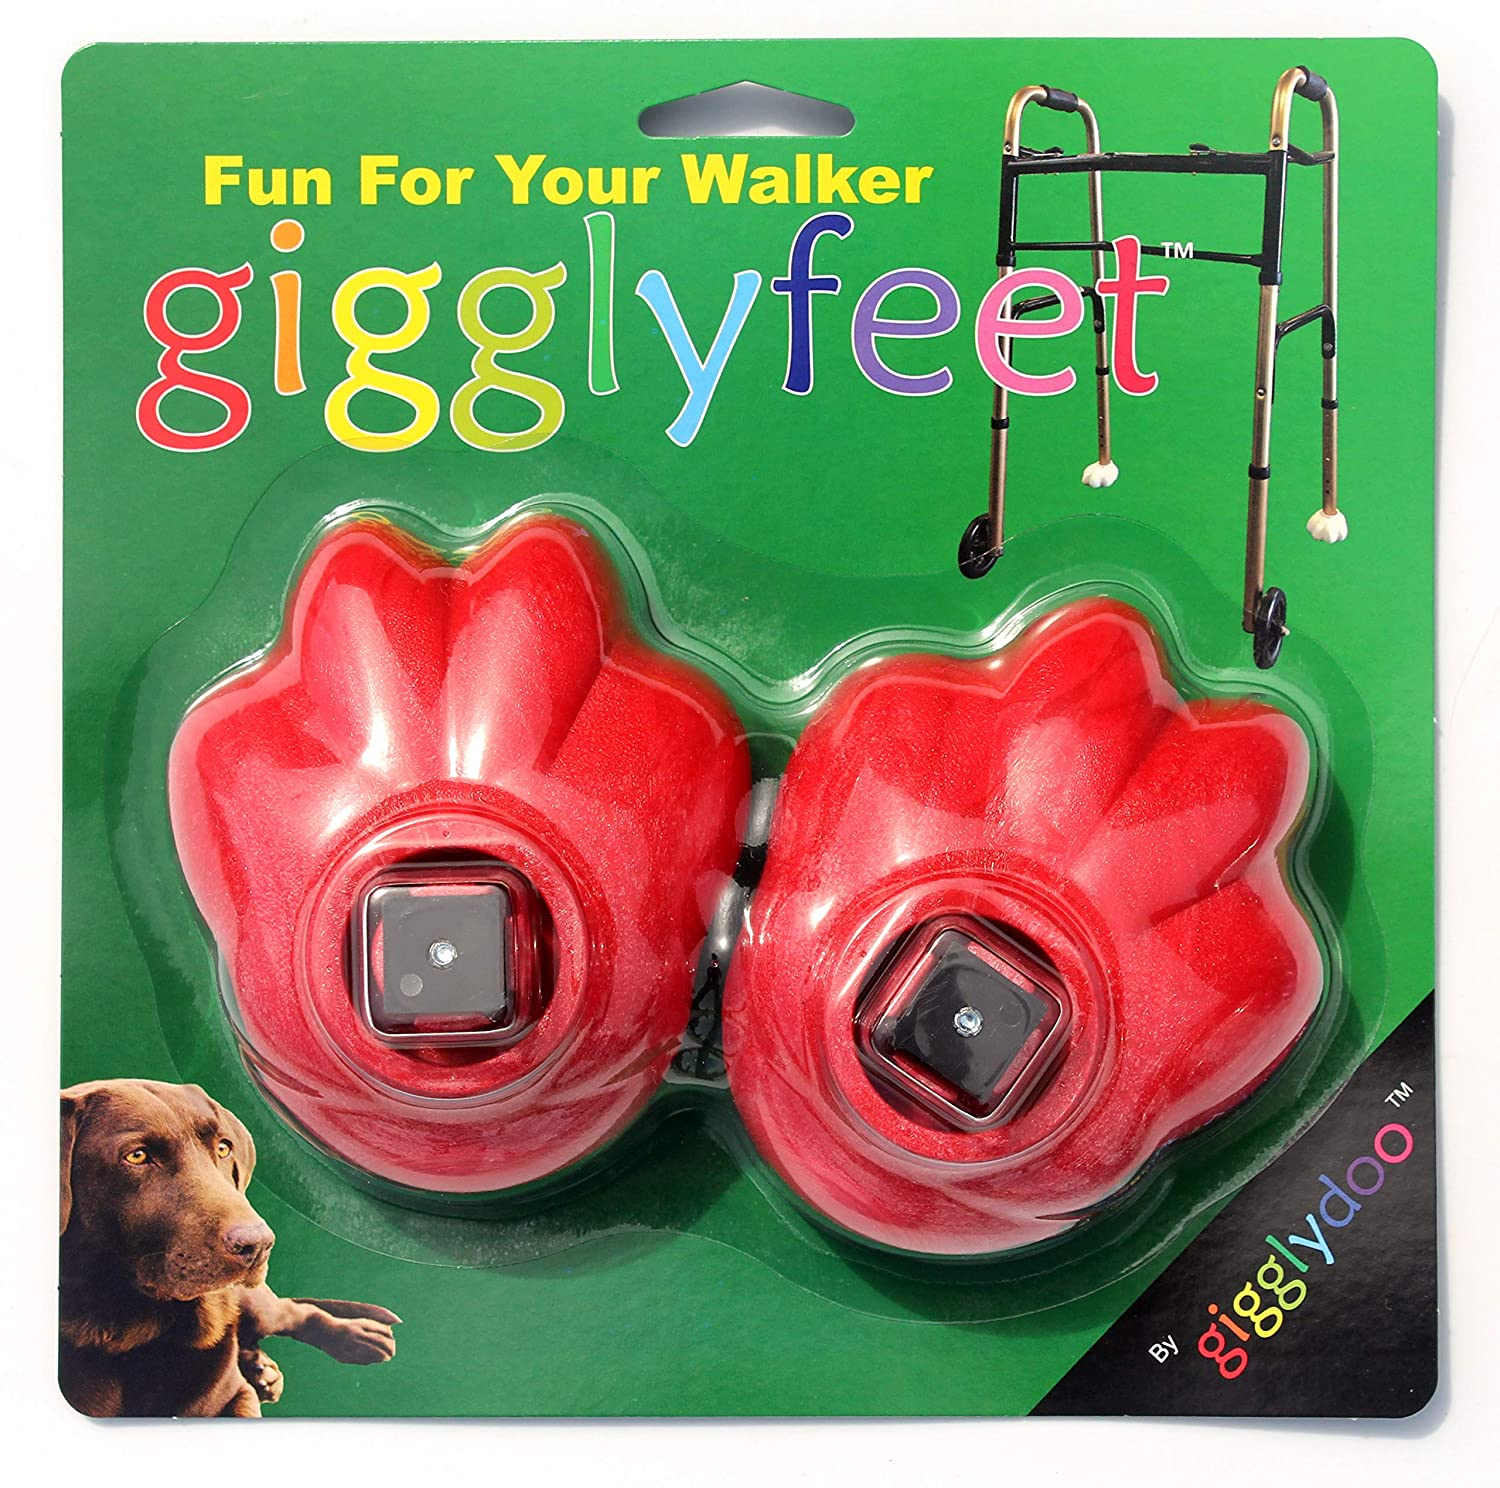 Amazon.com: Pies gigglyfeet de MEDA Nova Fun Walker Feet ...